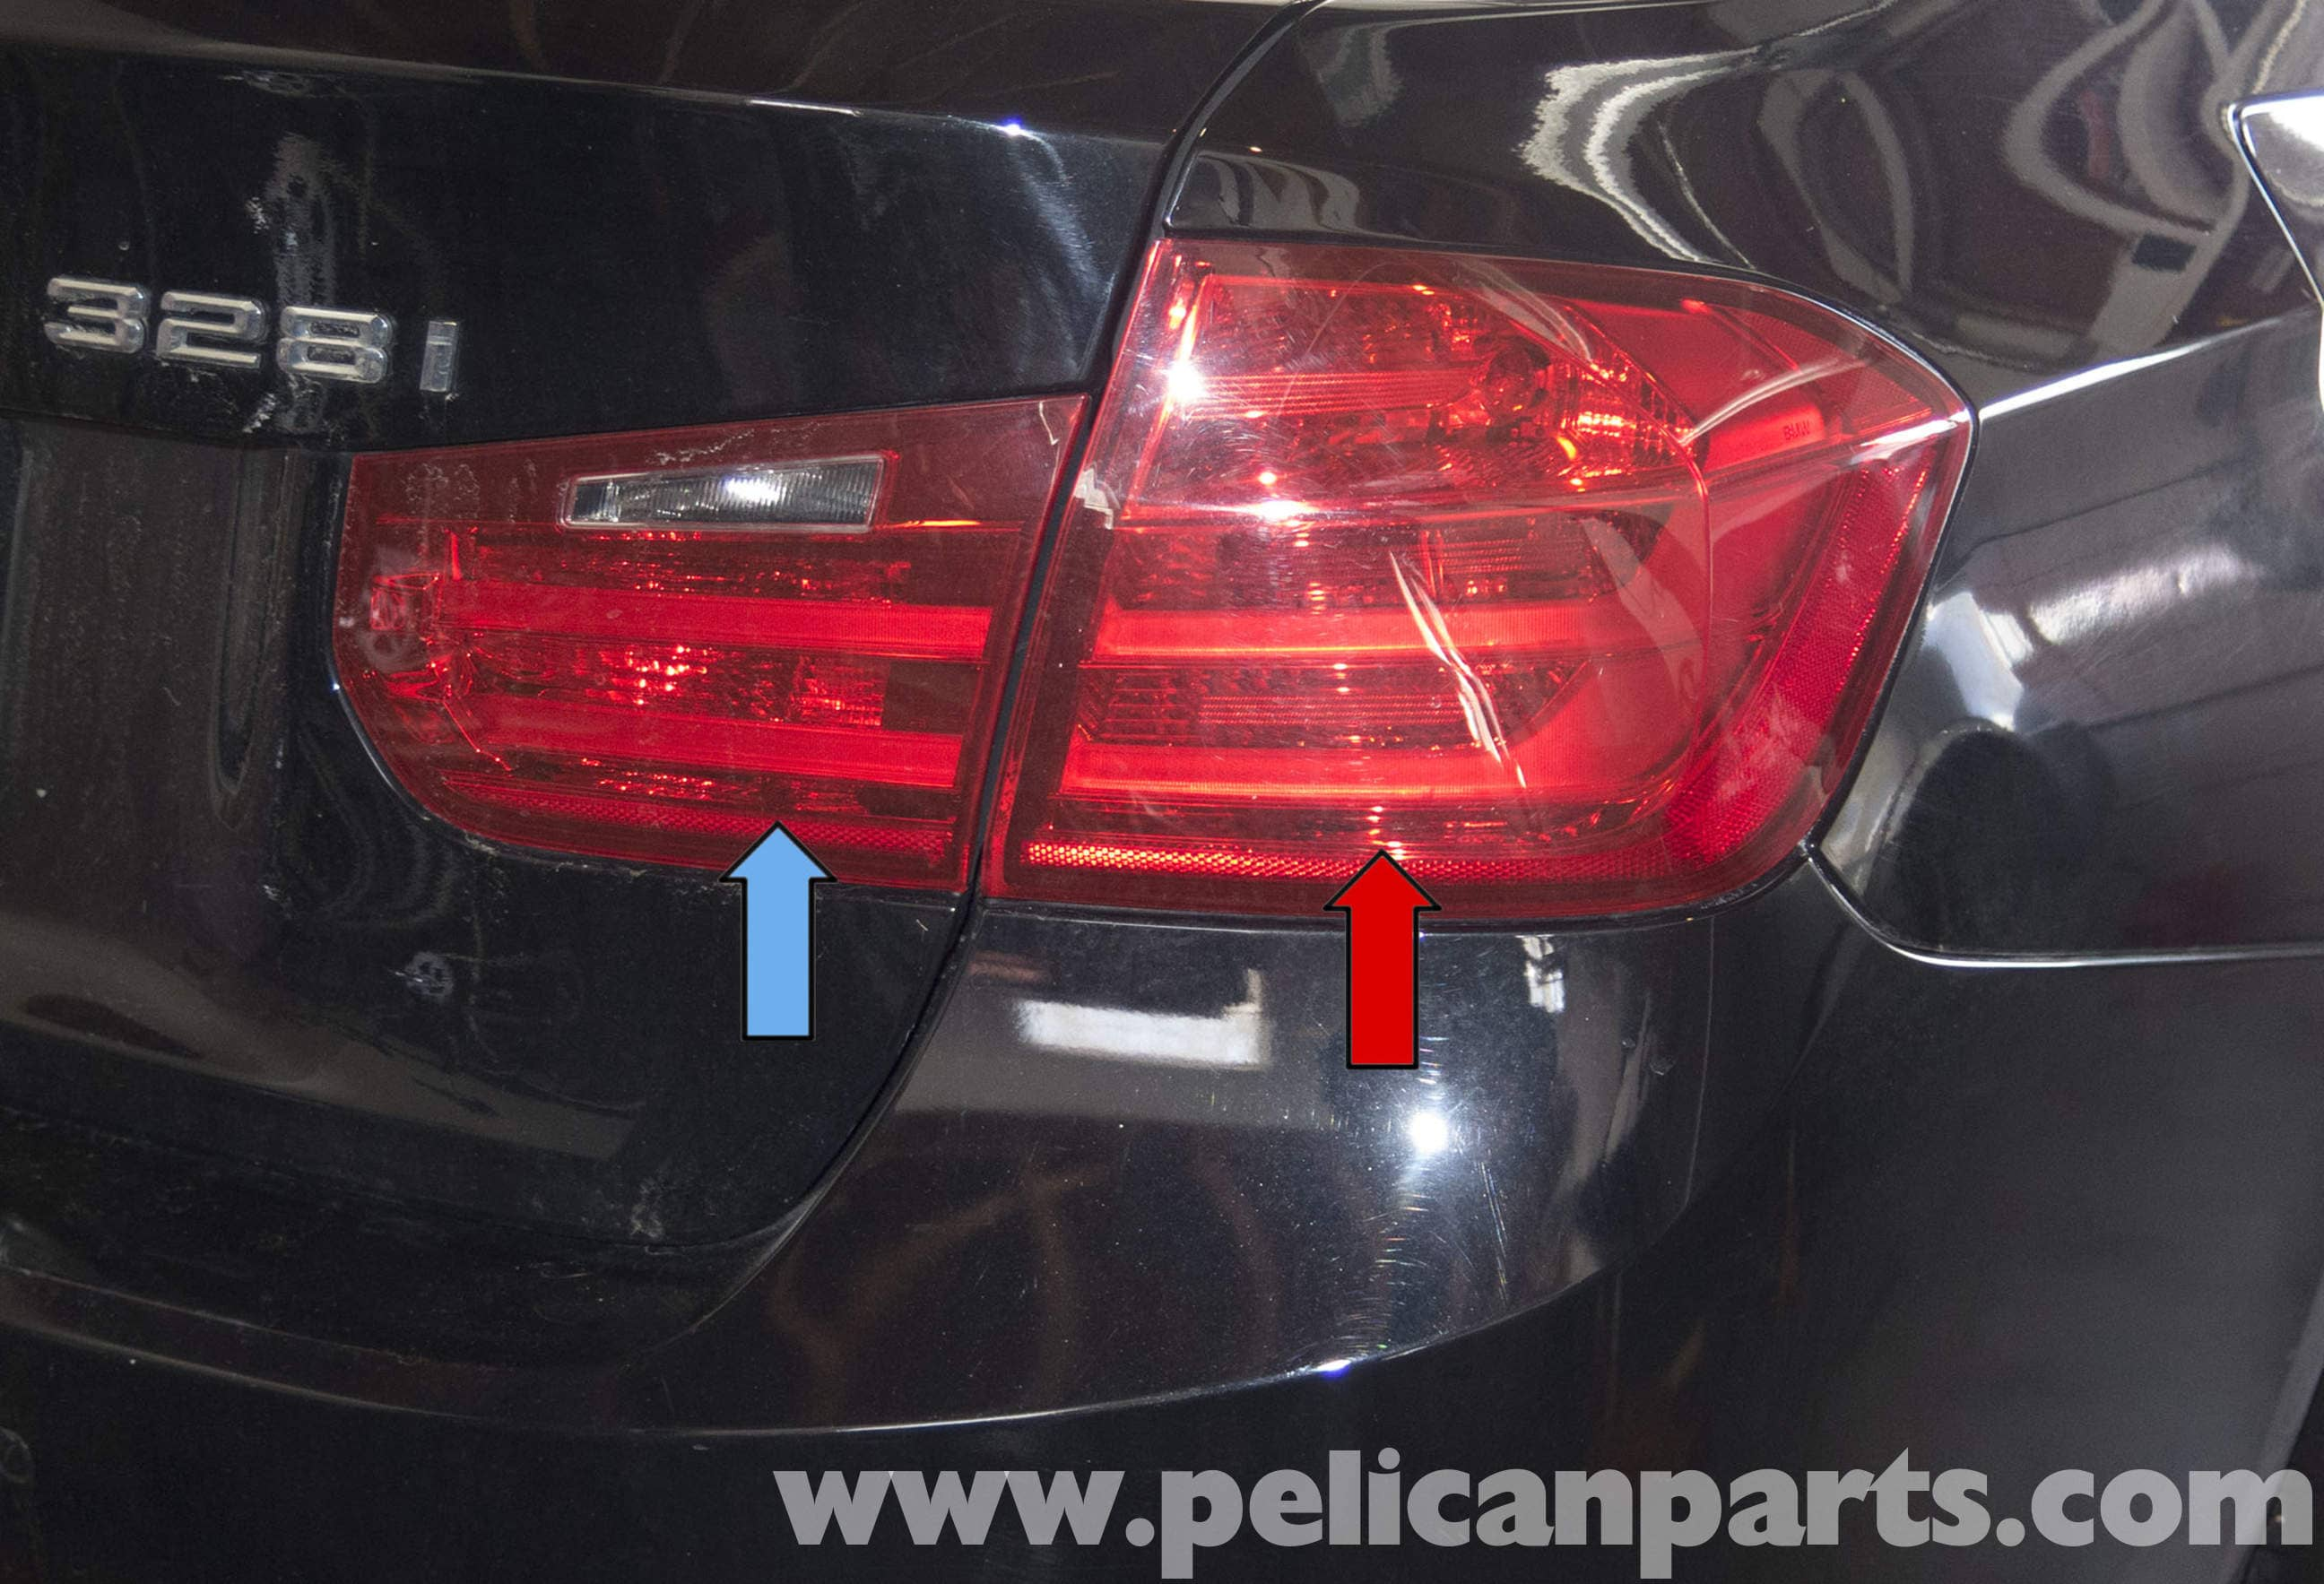 Pelican Parts Technical Article - BMW F30 3-Series - Tail Light